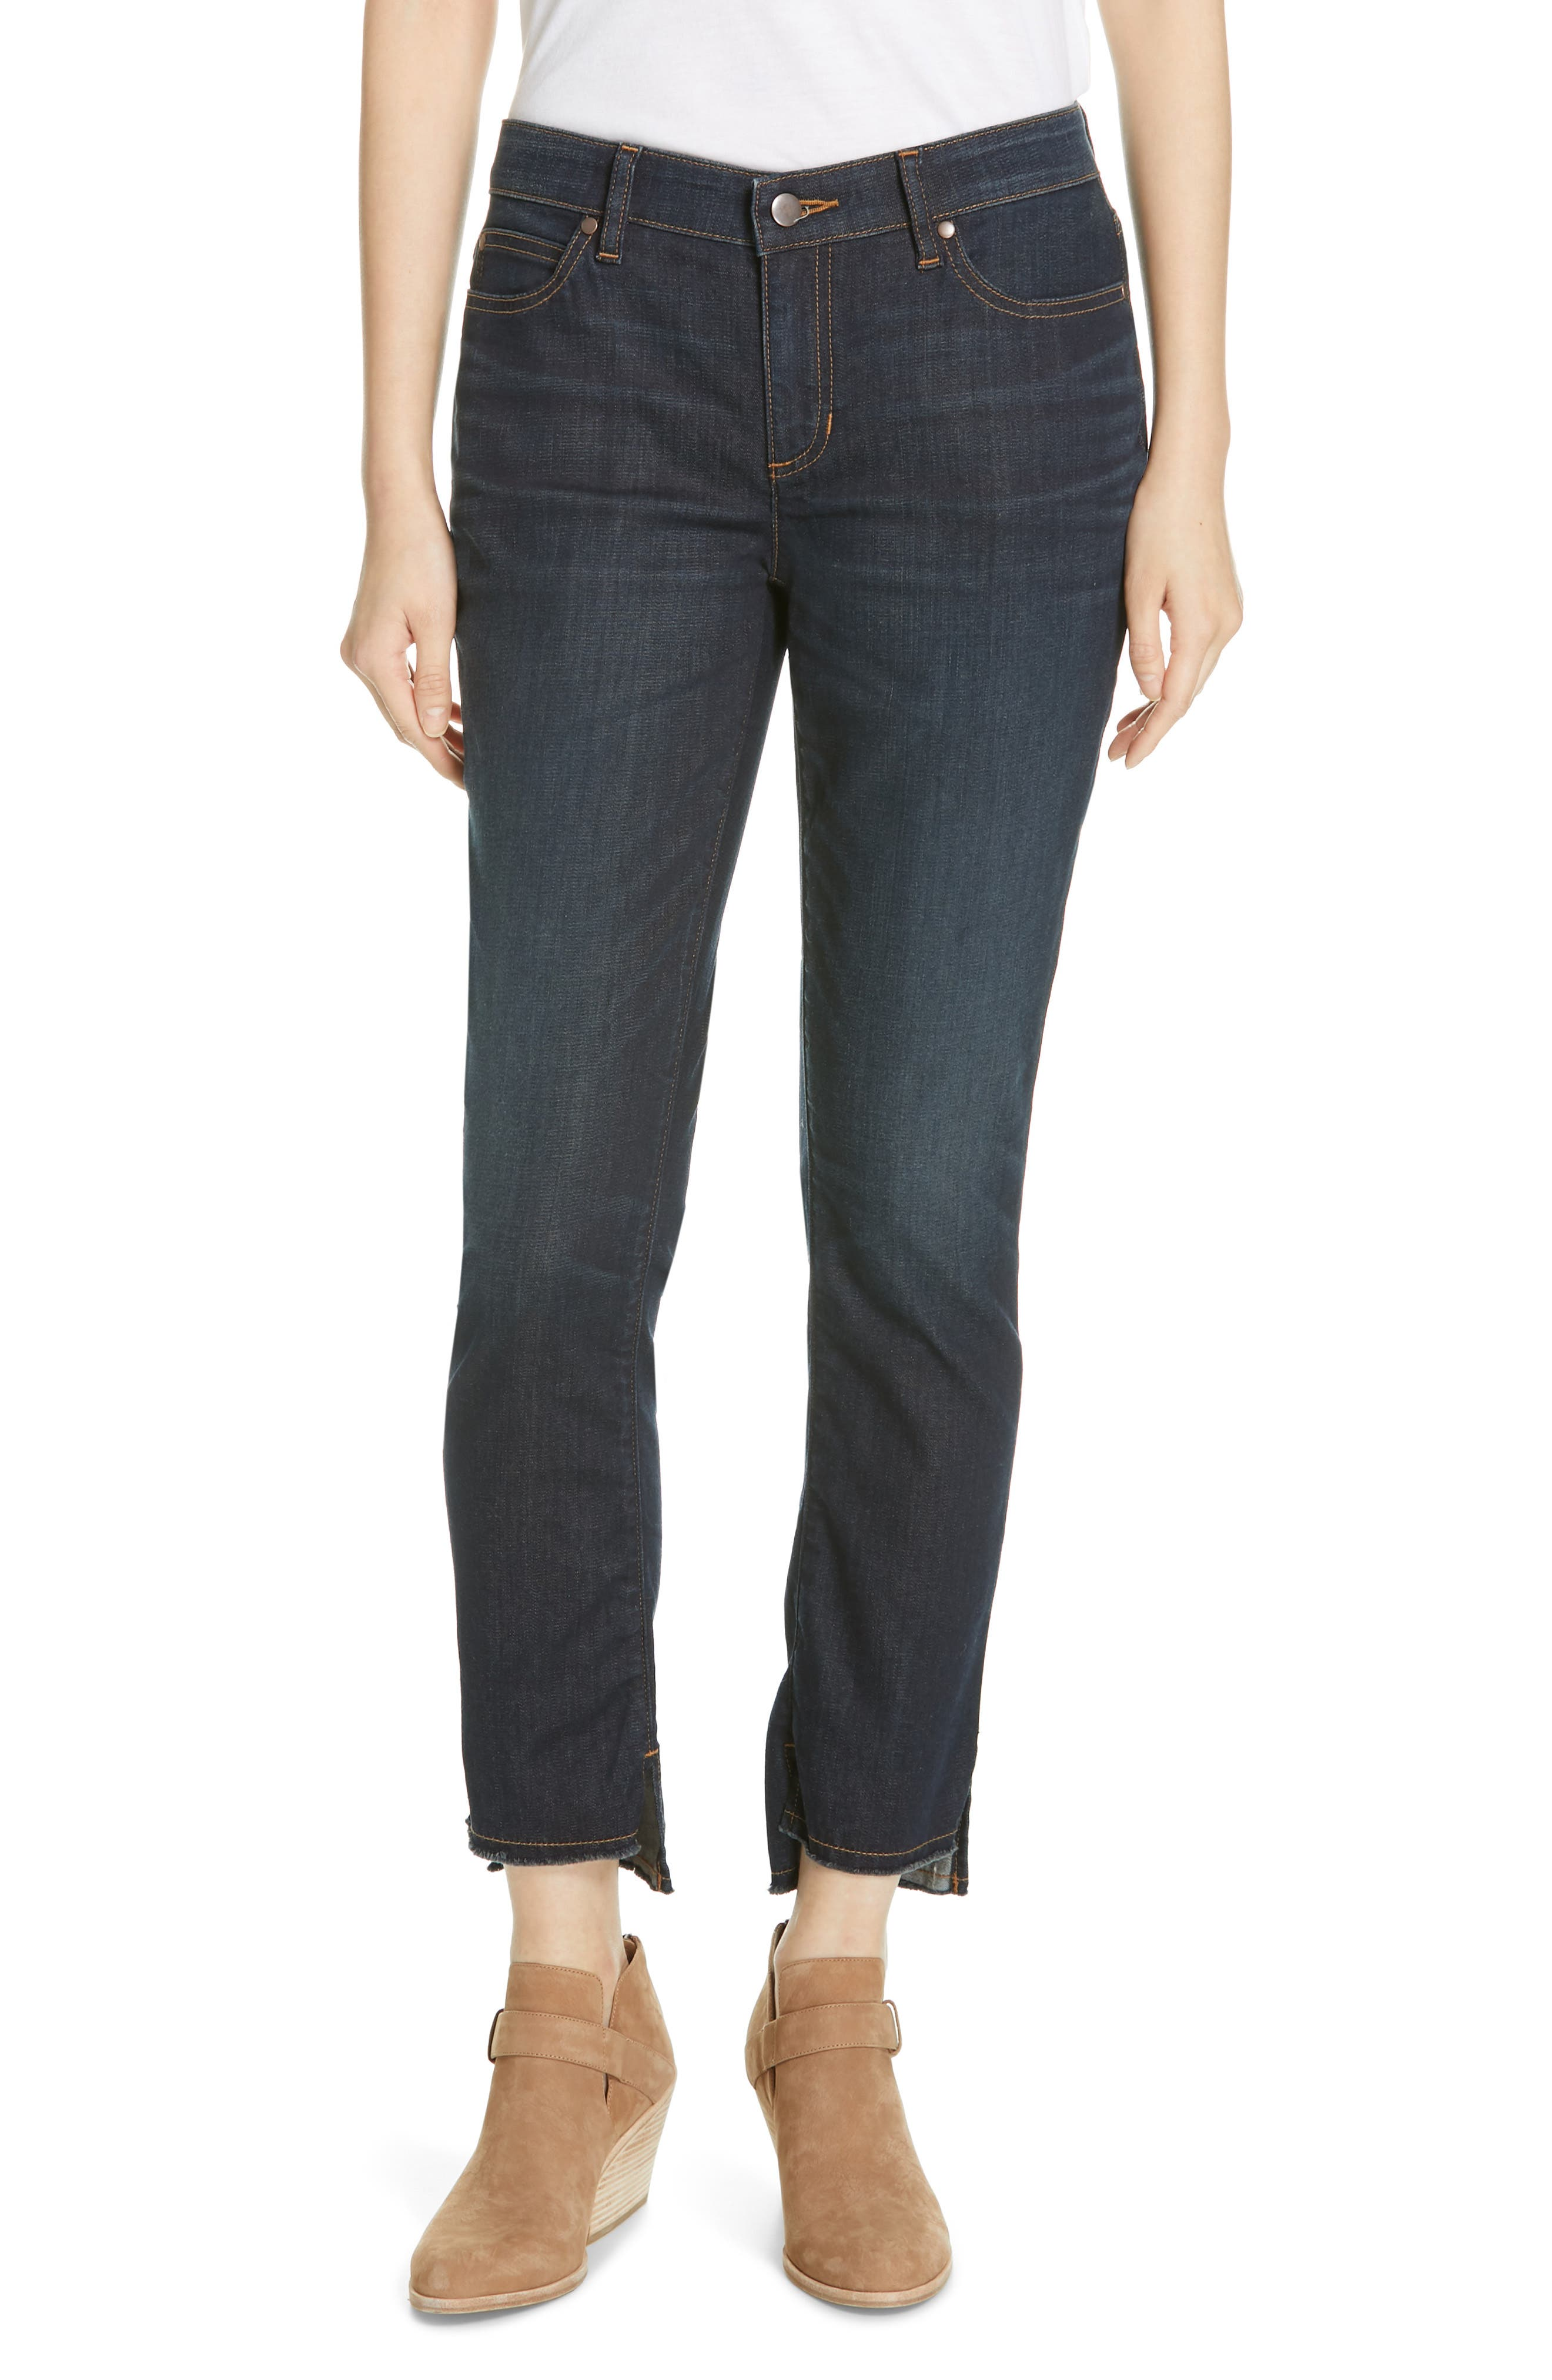 EILEEN FISHER, Raw Step Hem Slim Ankle Jeans, Main thumbnail 1, color, UTILITY BLUE